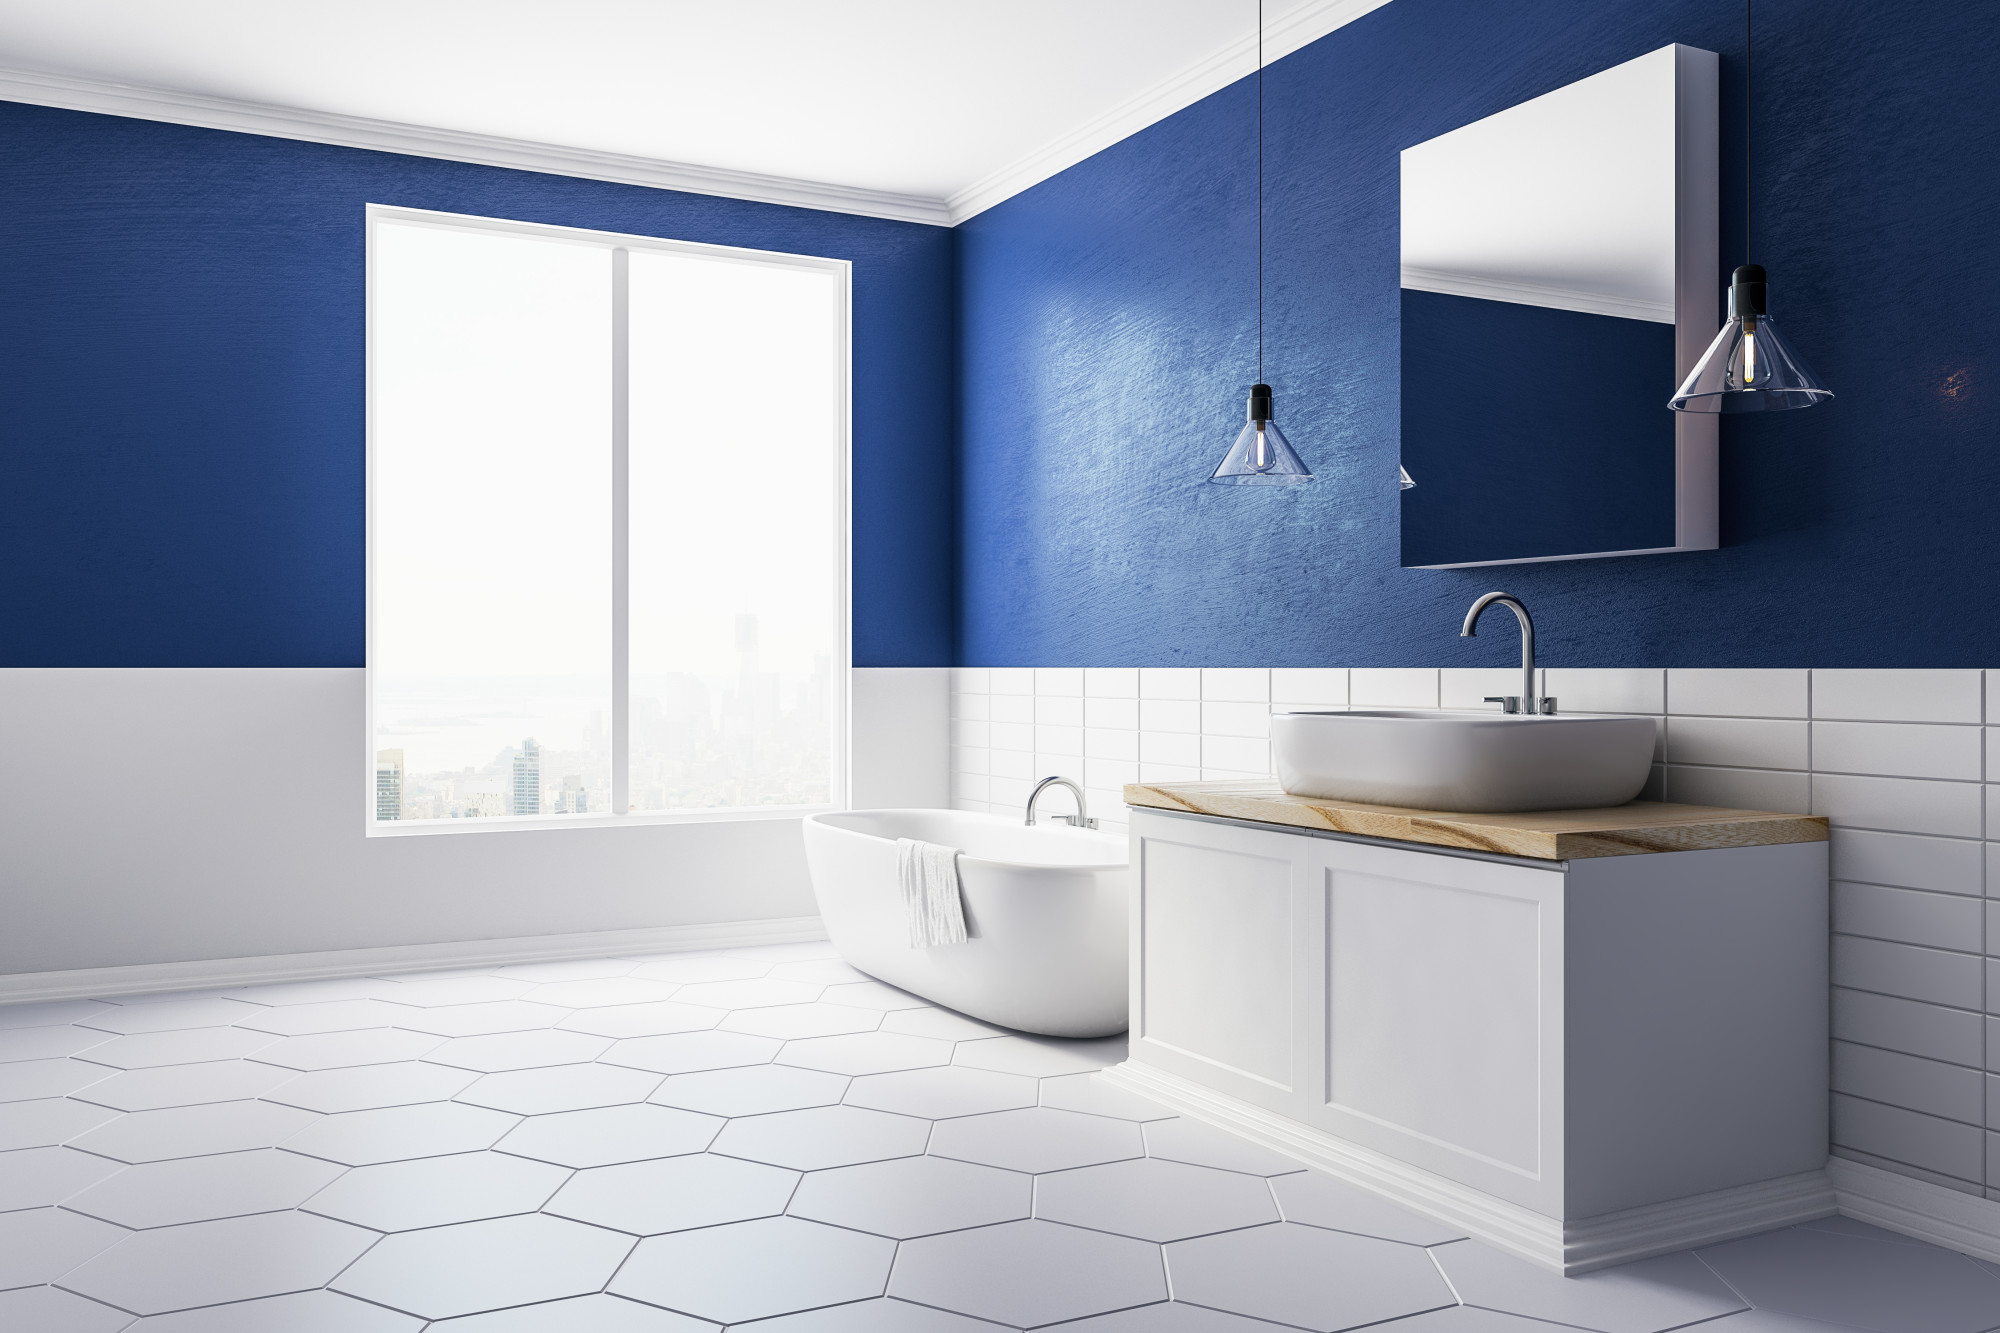 Ceramic Tile for Bathroom Floors BELK Tile